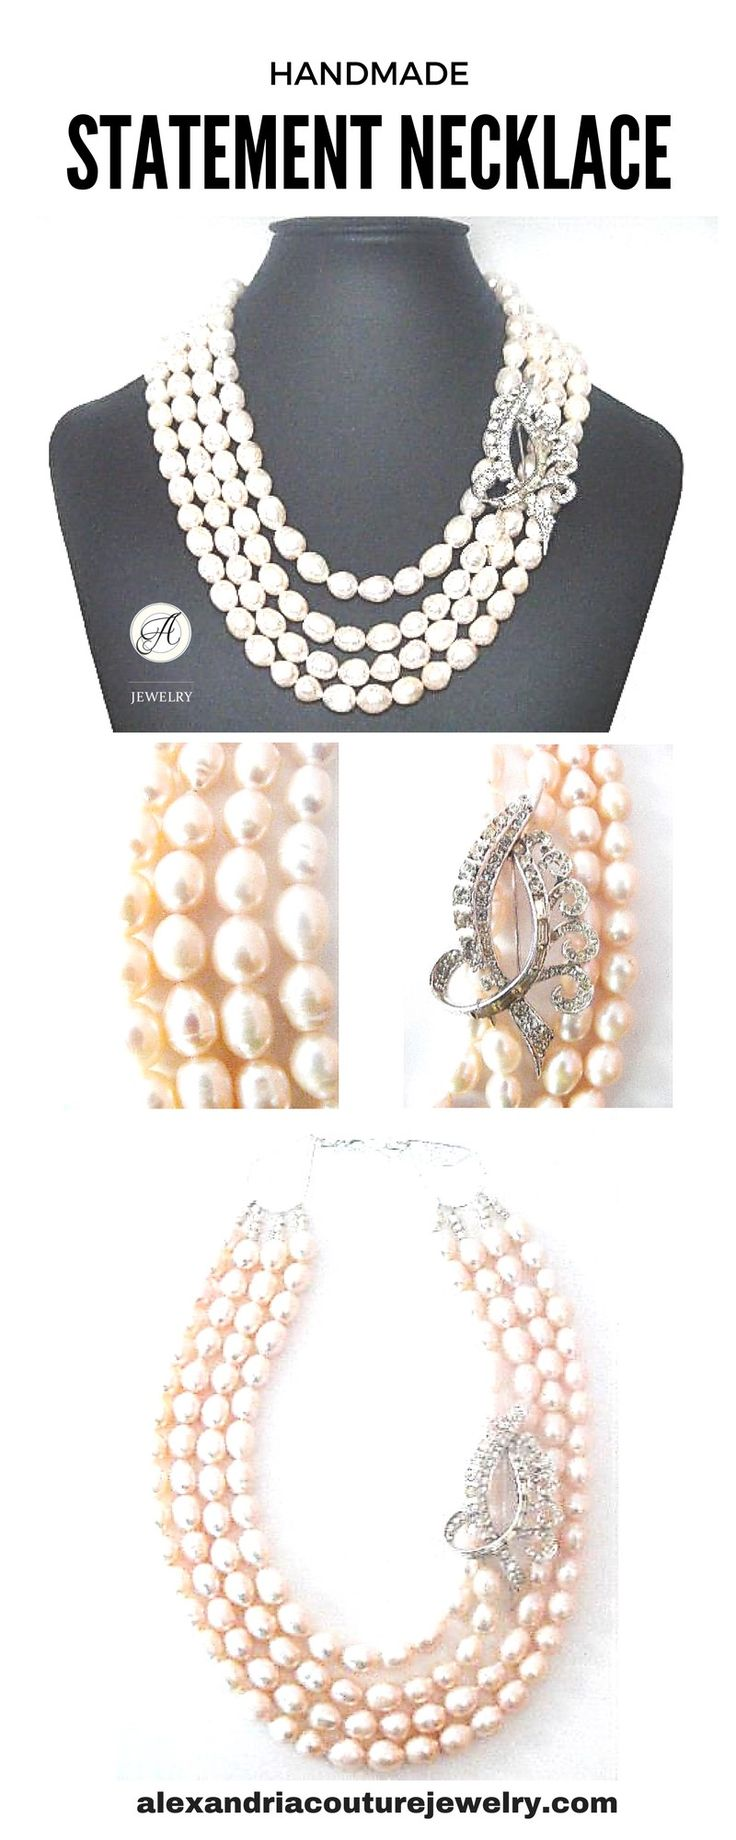 Unique, handmade statement necklace featuring pink freshwater pearls paired with vintage brooch. Wear it with lace dresses or chic outfits in black, white, pink colours. Add a feminine touch to your look! $275.00. #freshwaterpearl#statementnecklaces#necklaces#handmadenecklace